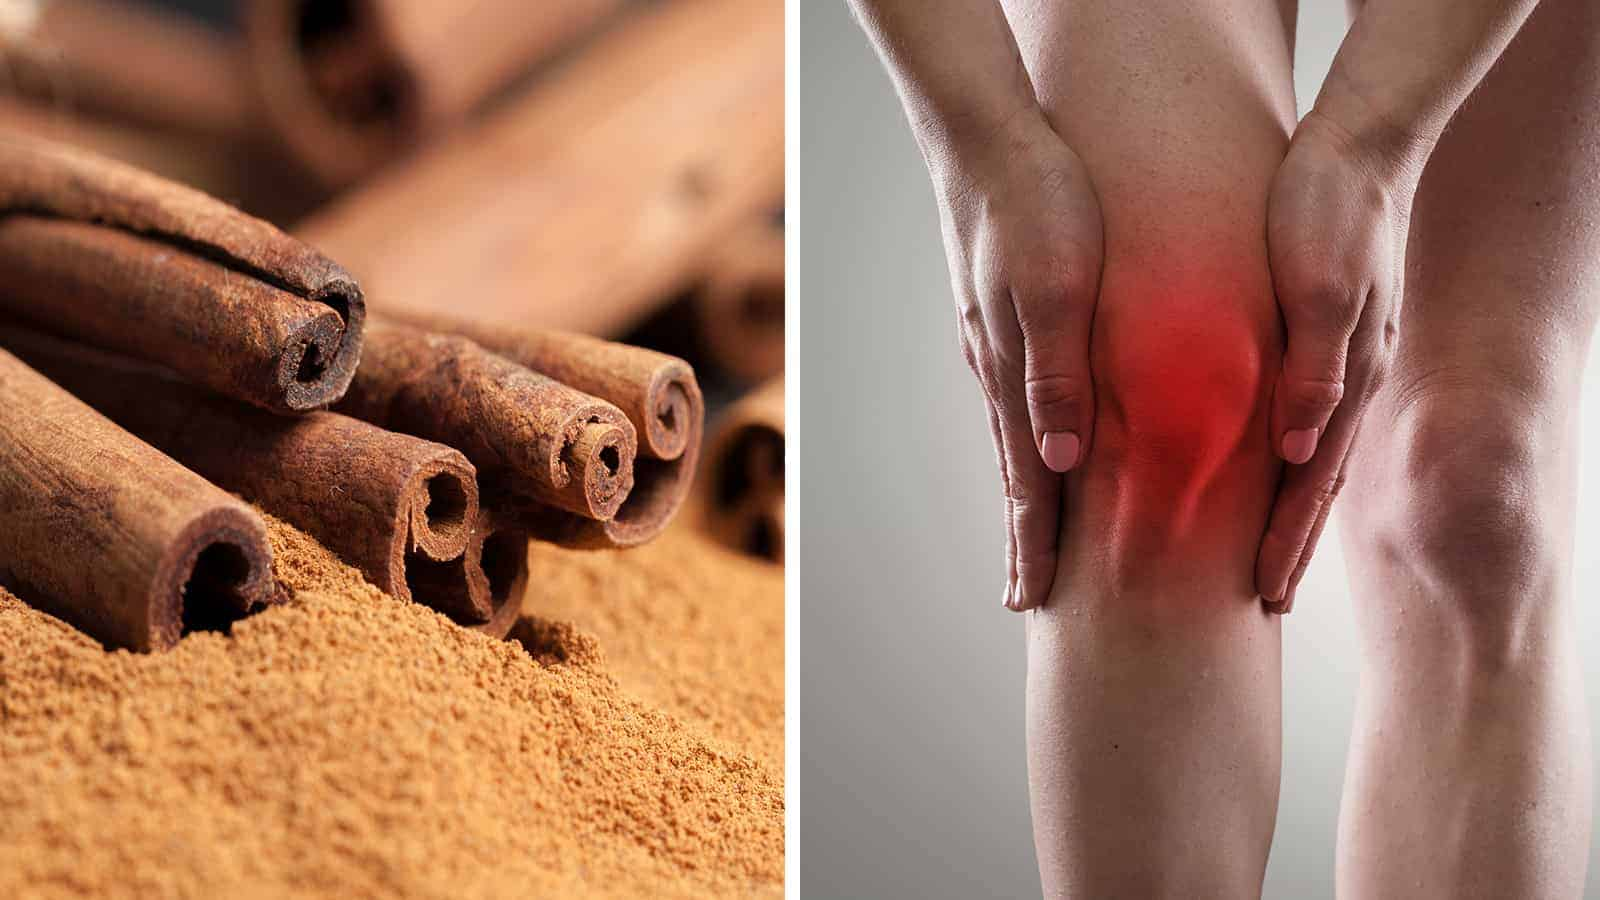 10 Ways to Use Cinnamon to Relieve Inflammation, According to Science